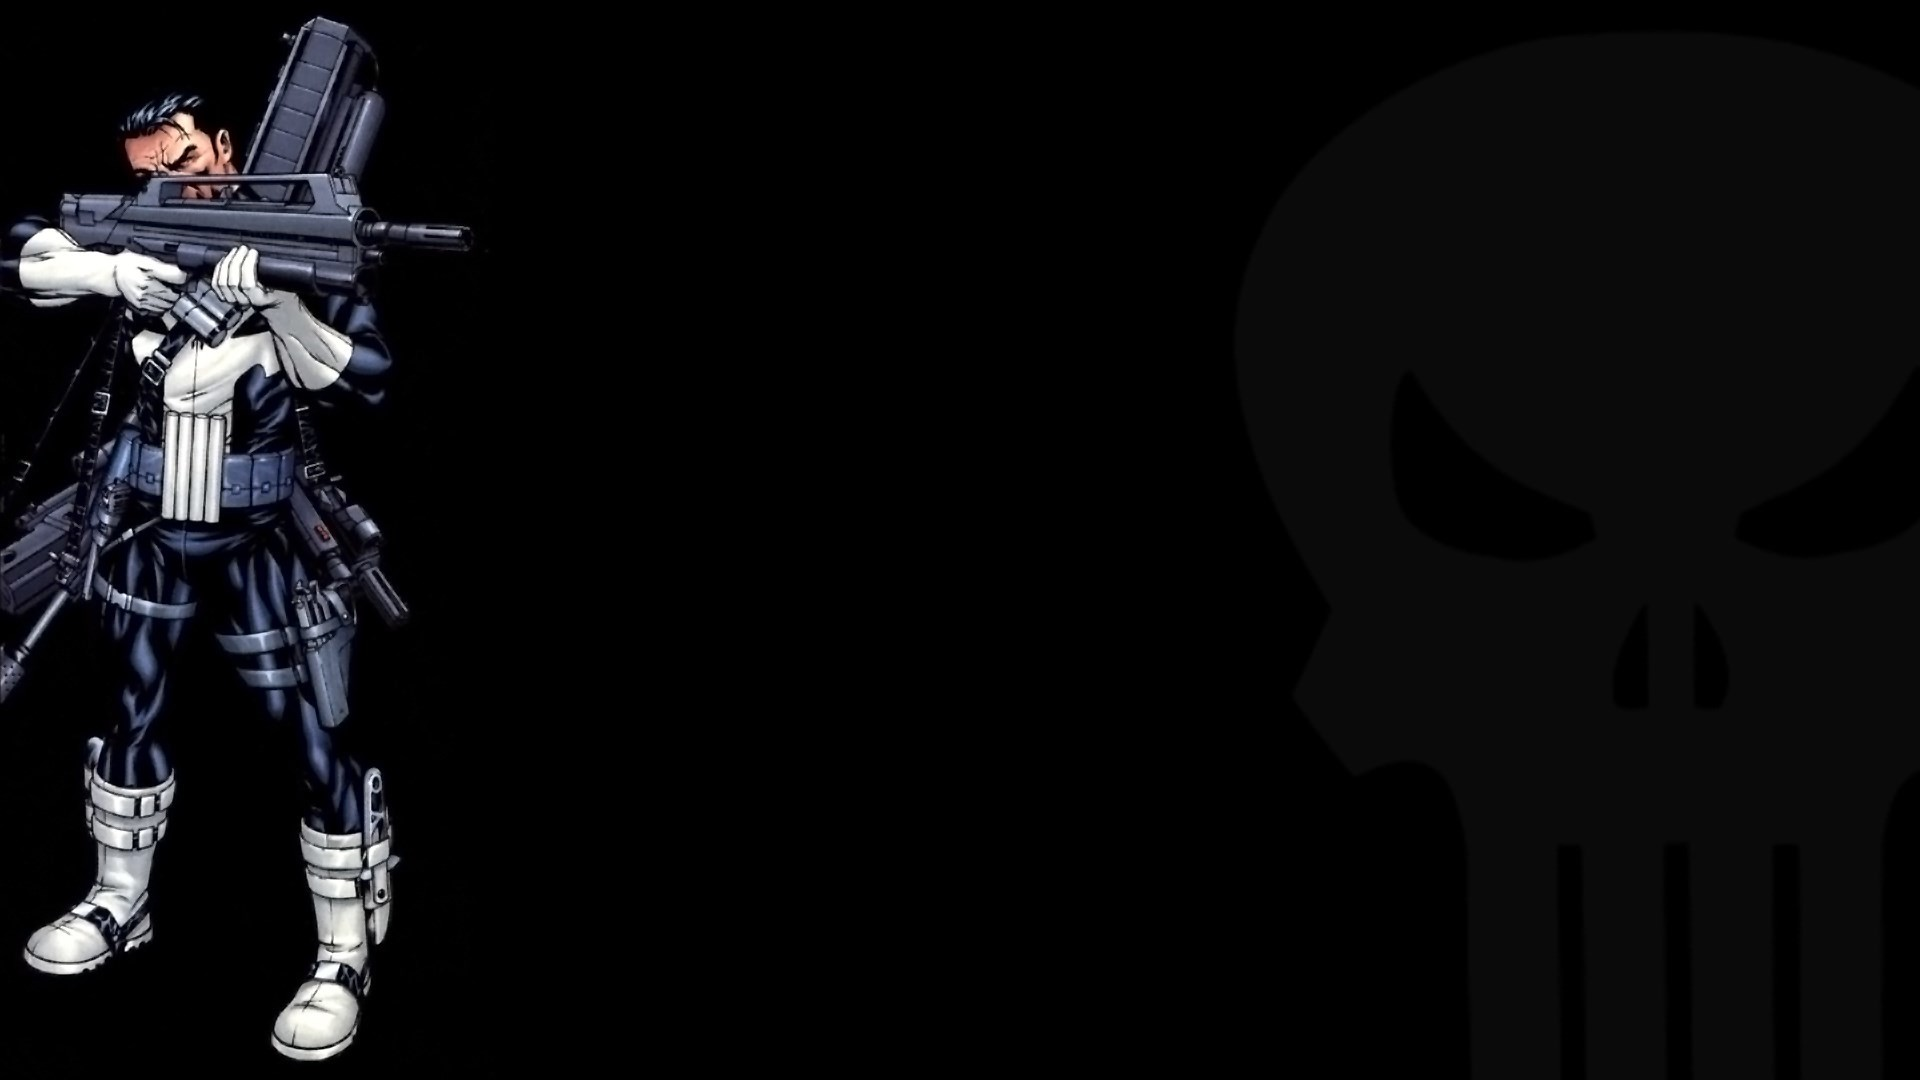 1920x1080 Showing posts & media for Punisher blue wallpaper | www .